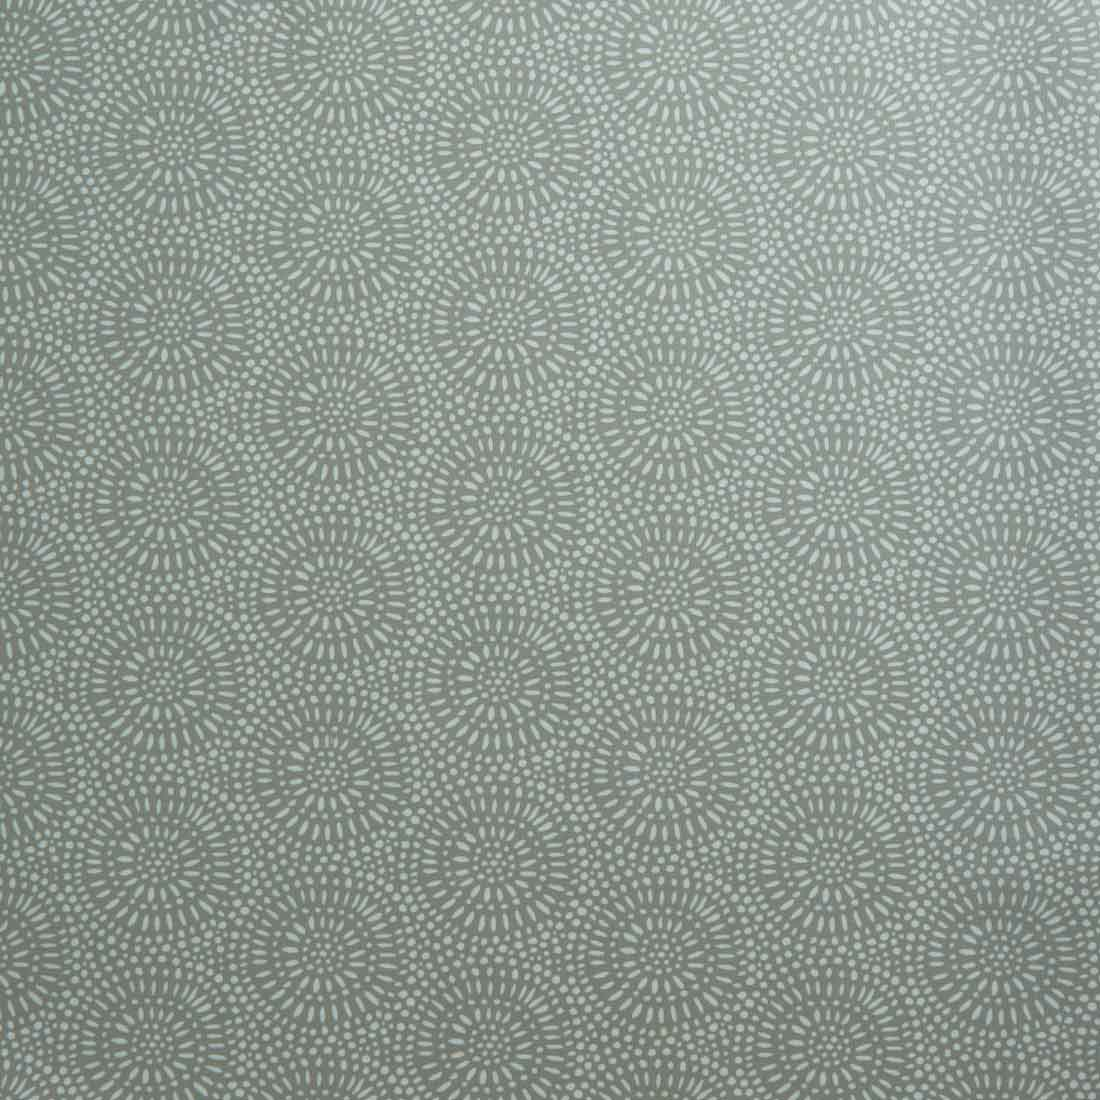 Whirl Pebble Oil Cloth